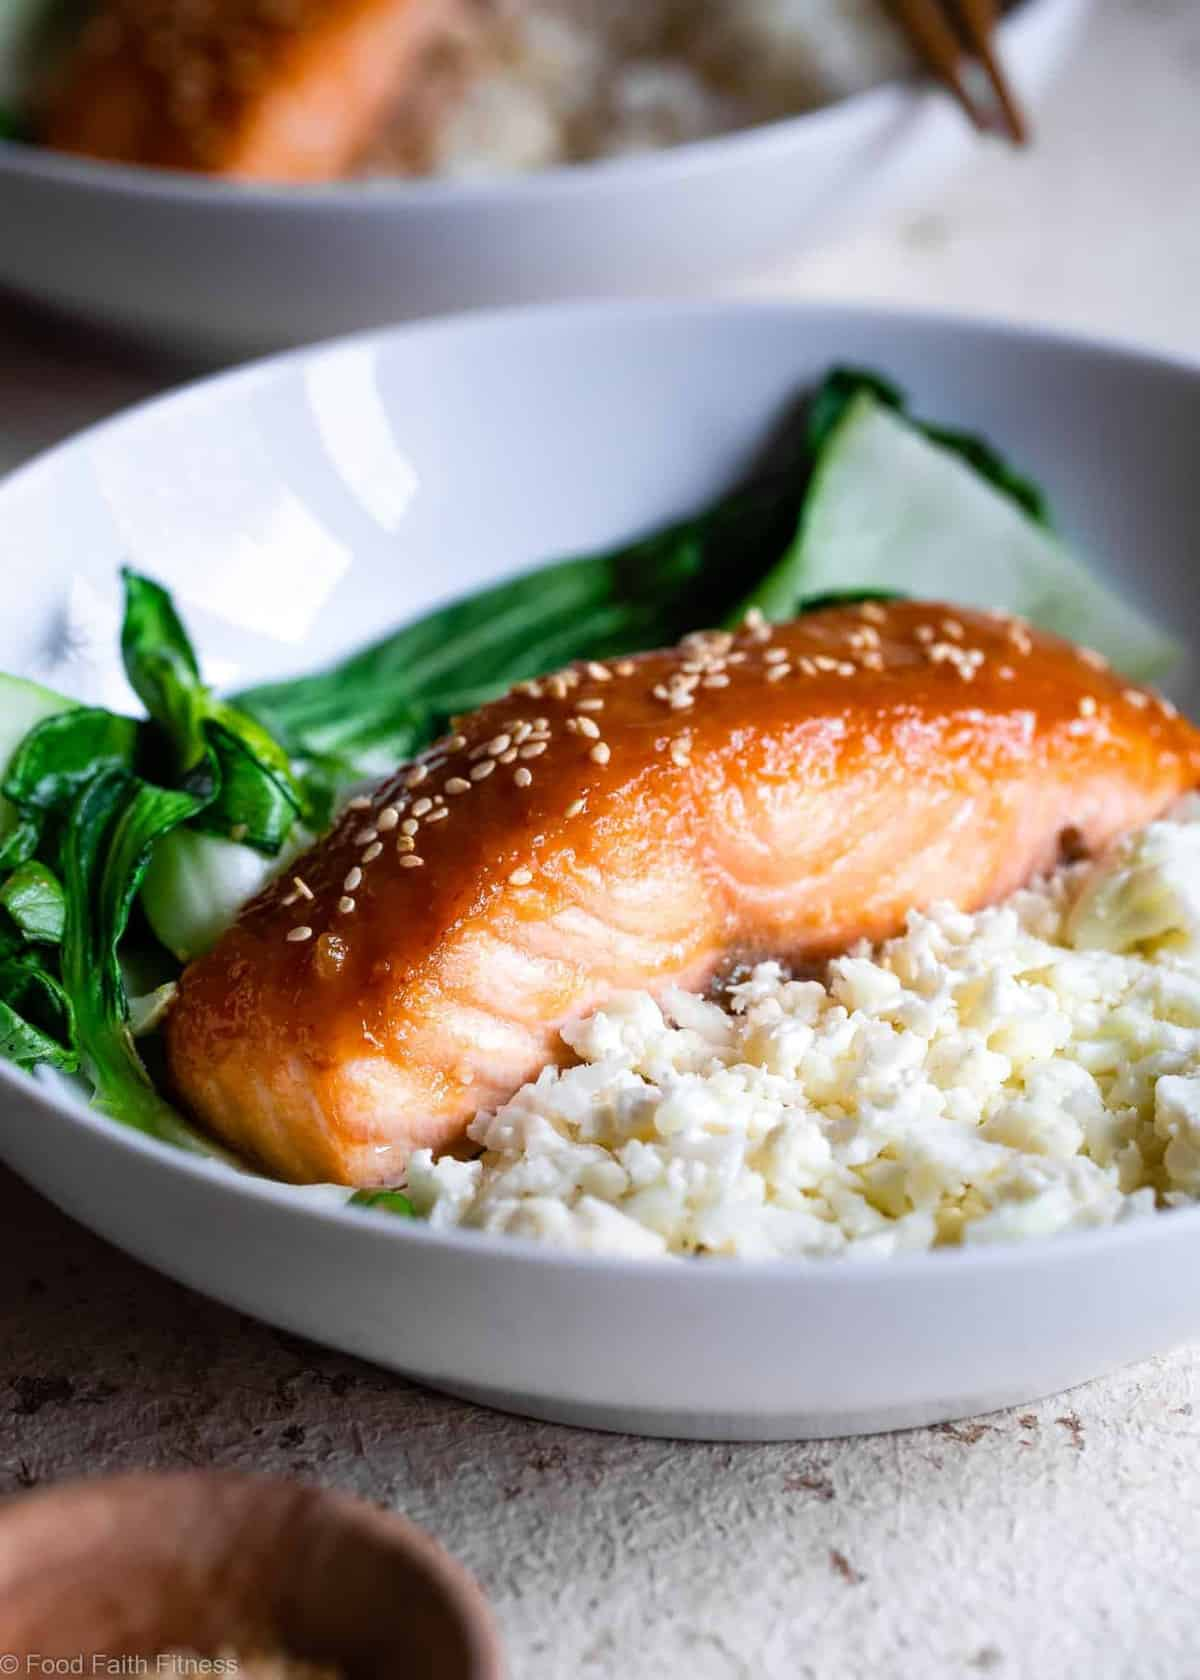 Honey Sriracha Miso Glazed Salmon - An easy, 15 minute weeknight dinner that is big on spicy-sweet asian flavor! A gluten free meal you'll make over and over! Only one Weight Watchers SmartPoint too! | #Foodfaithfitness |